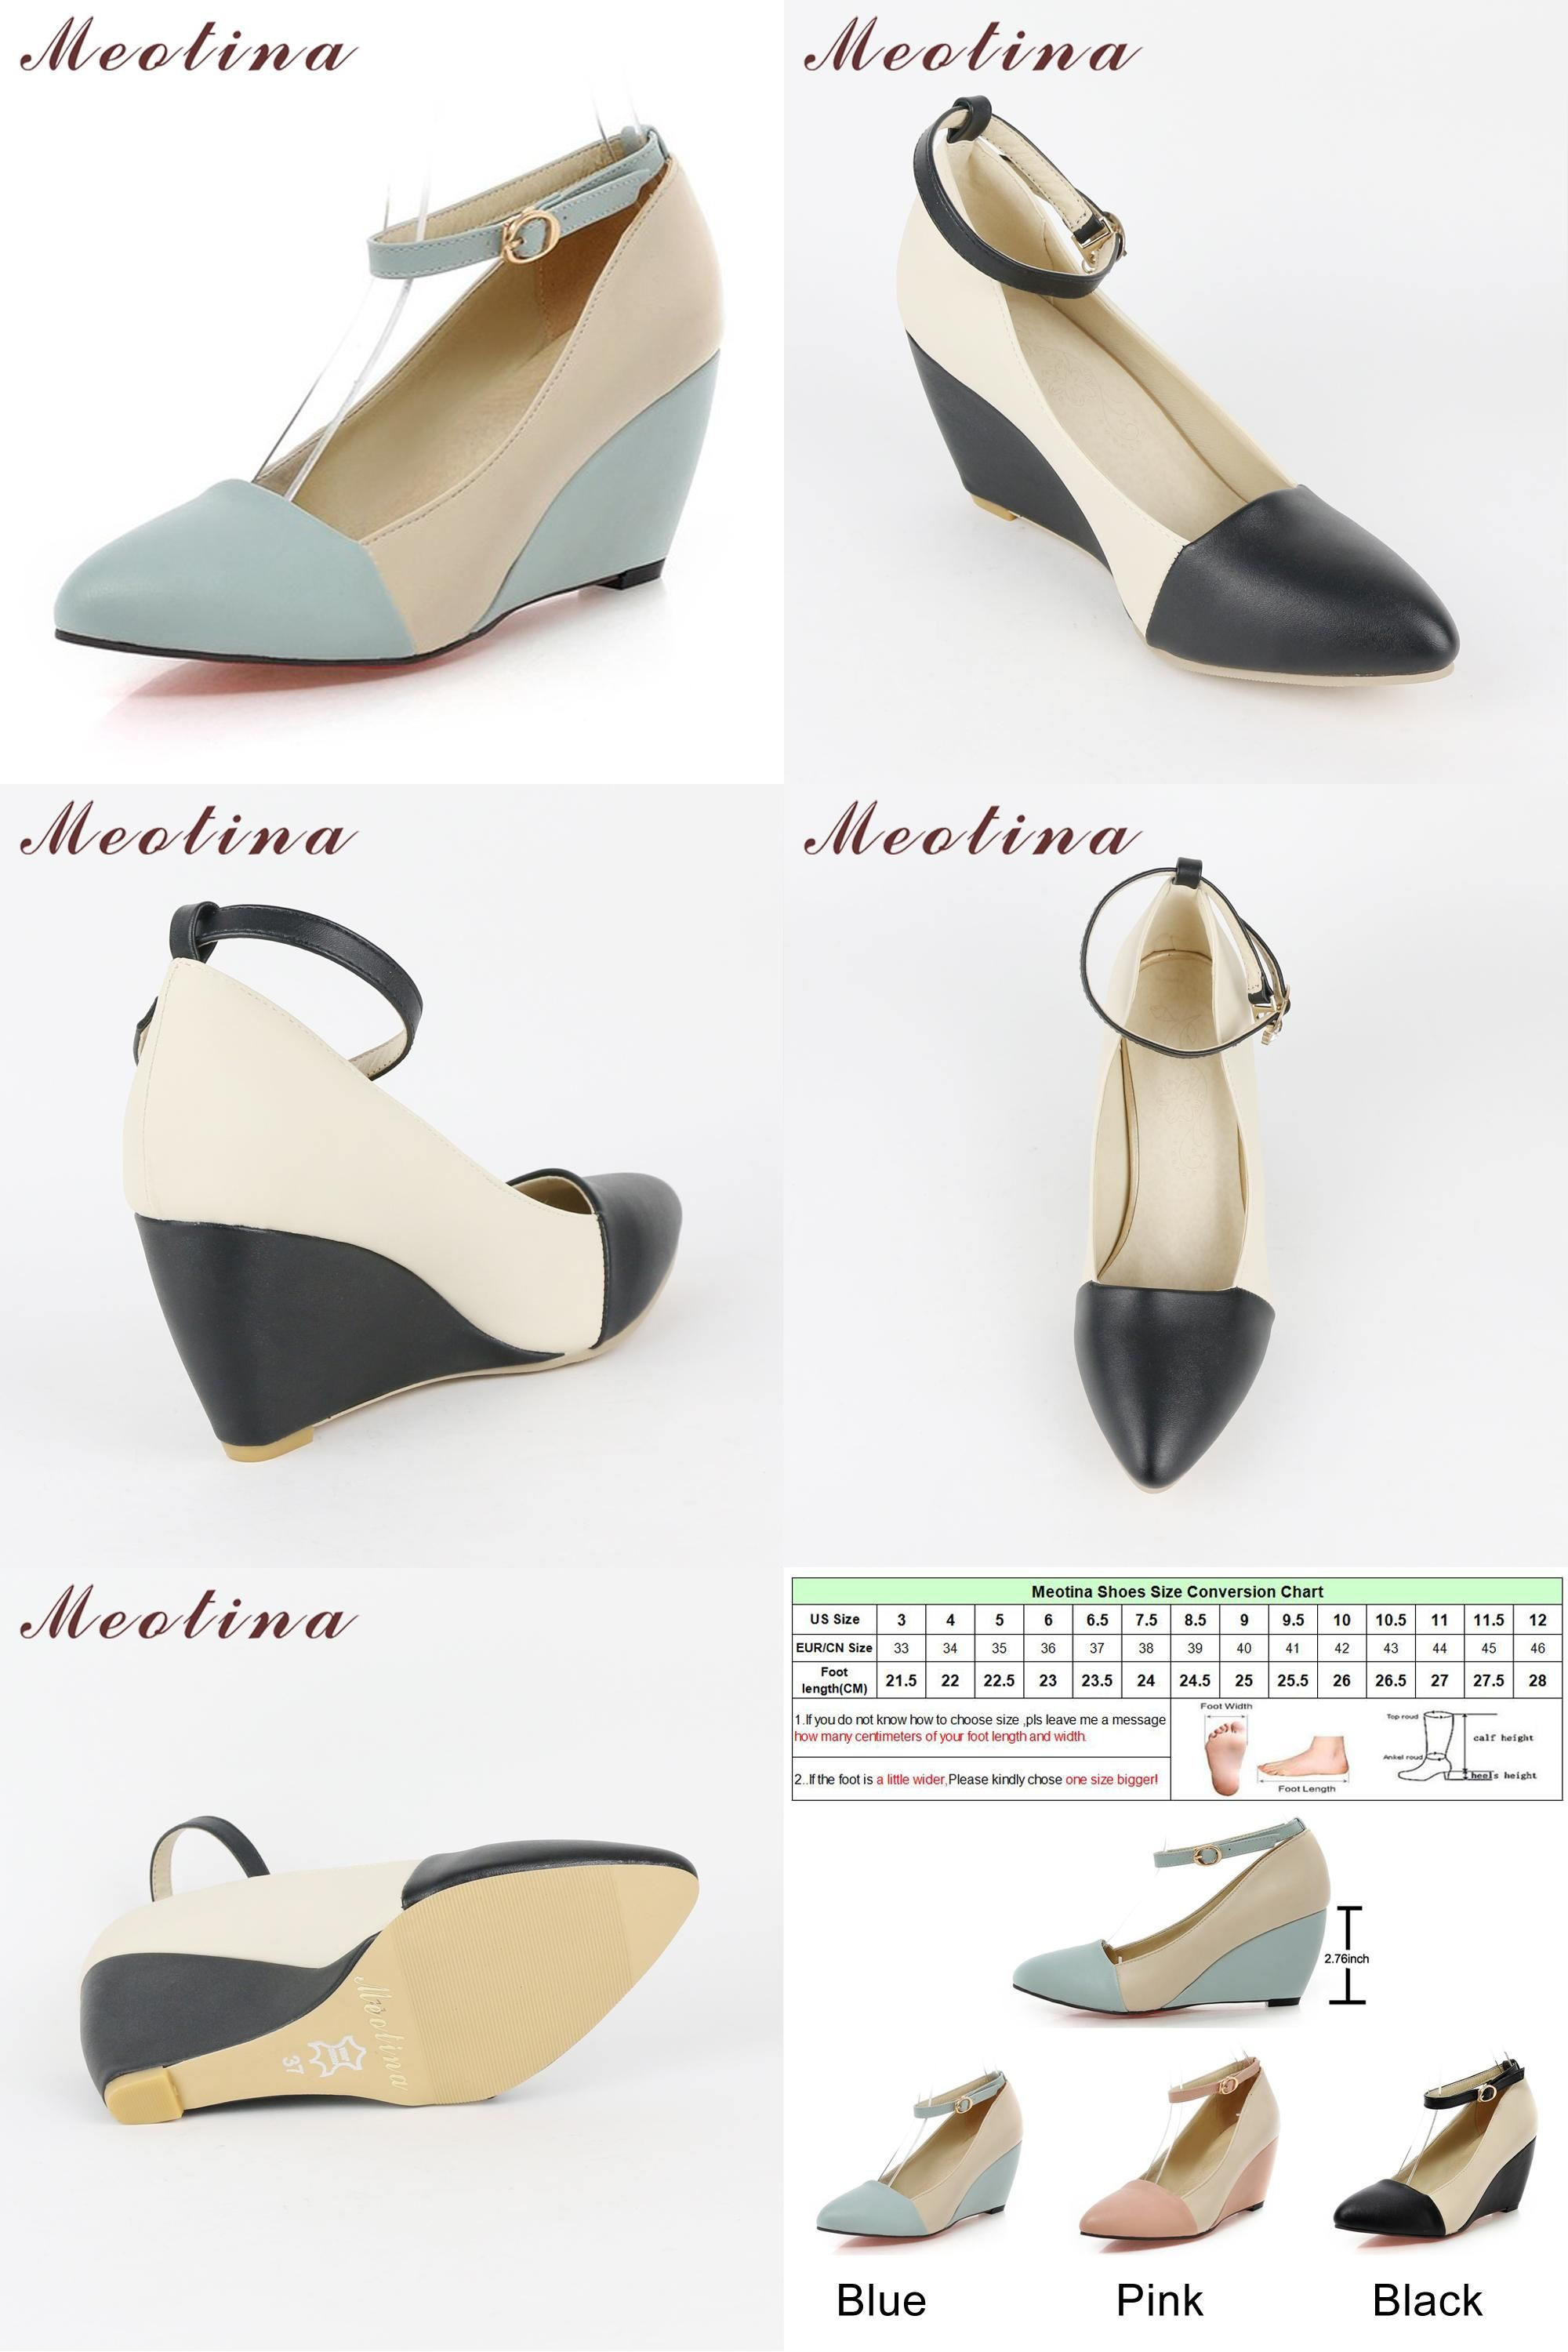 de1a4dc72f2879  Visit to Buy  Meotina Shoes Women Pumps Spring Autumn Pointed Toe Ankle  Strap High